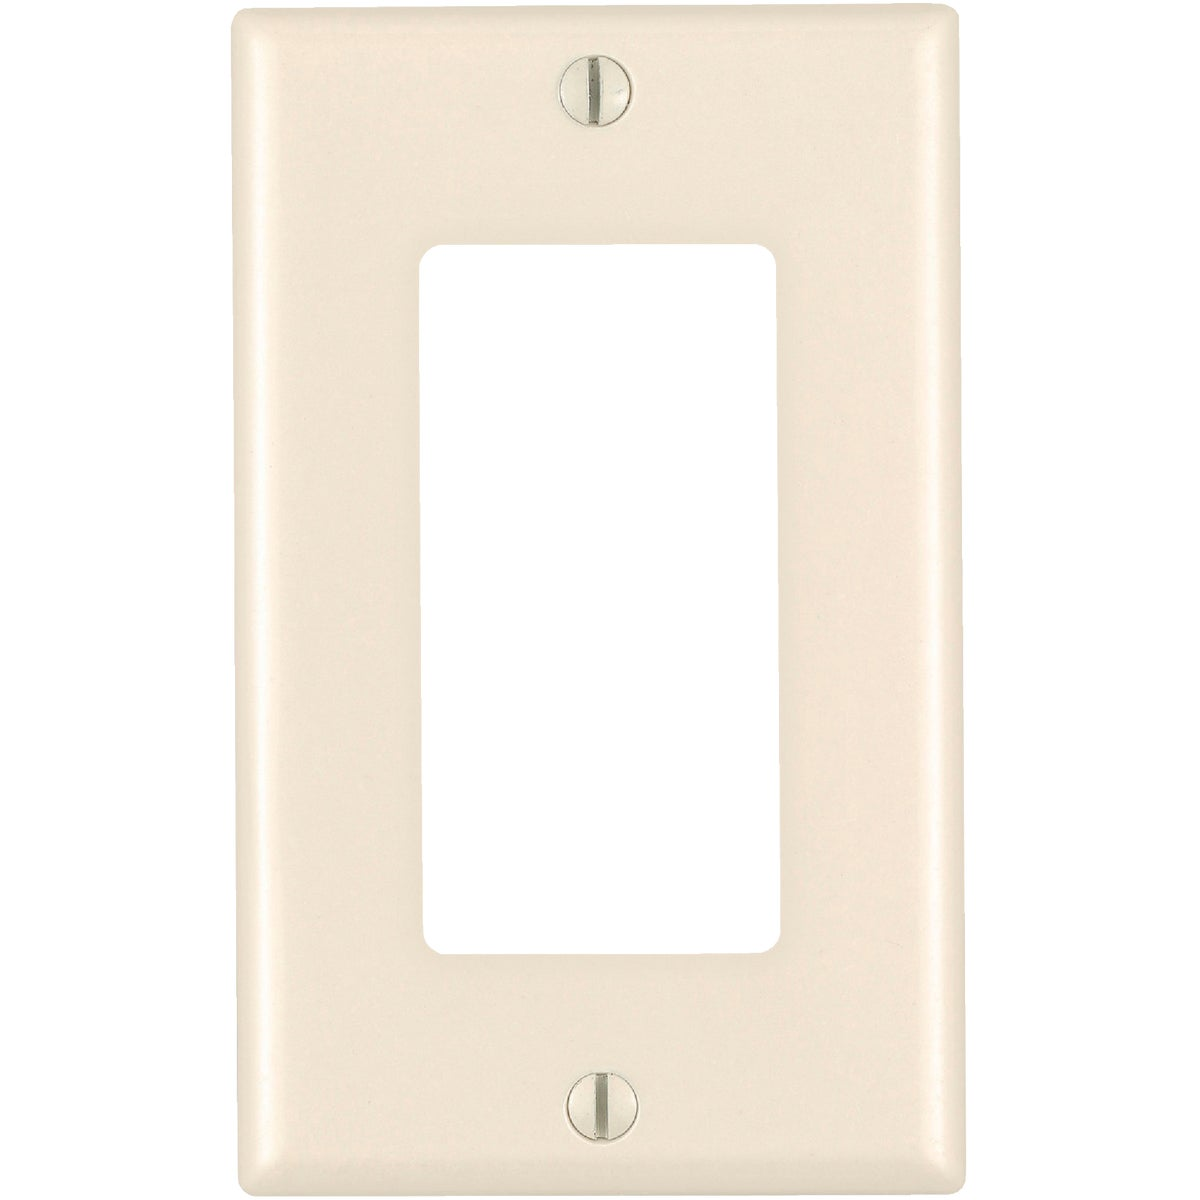 LT ALM ROCKER WALLPLATE - 015-80601-00T by Leviton Mfg Co